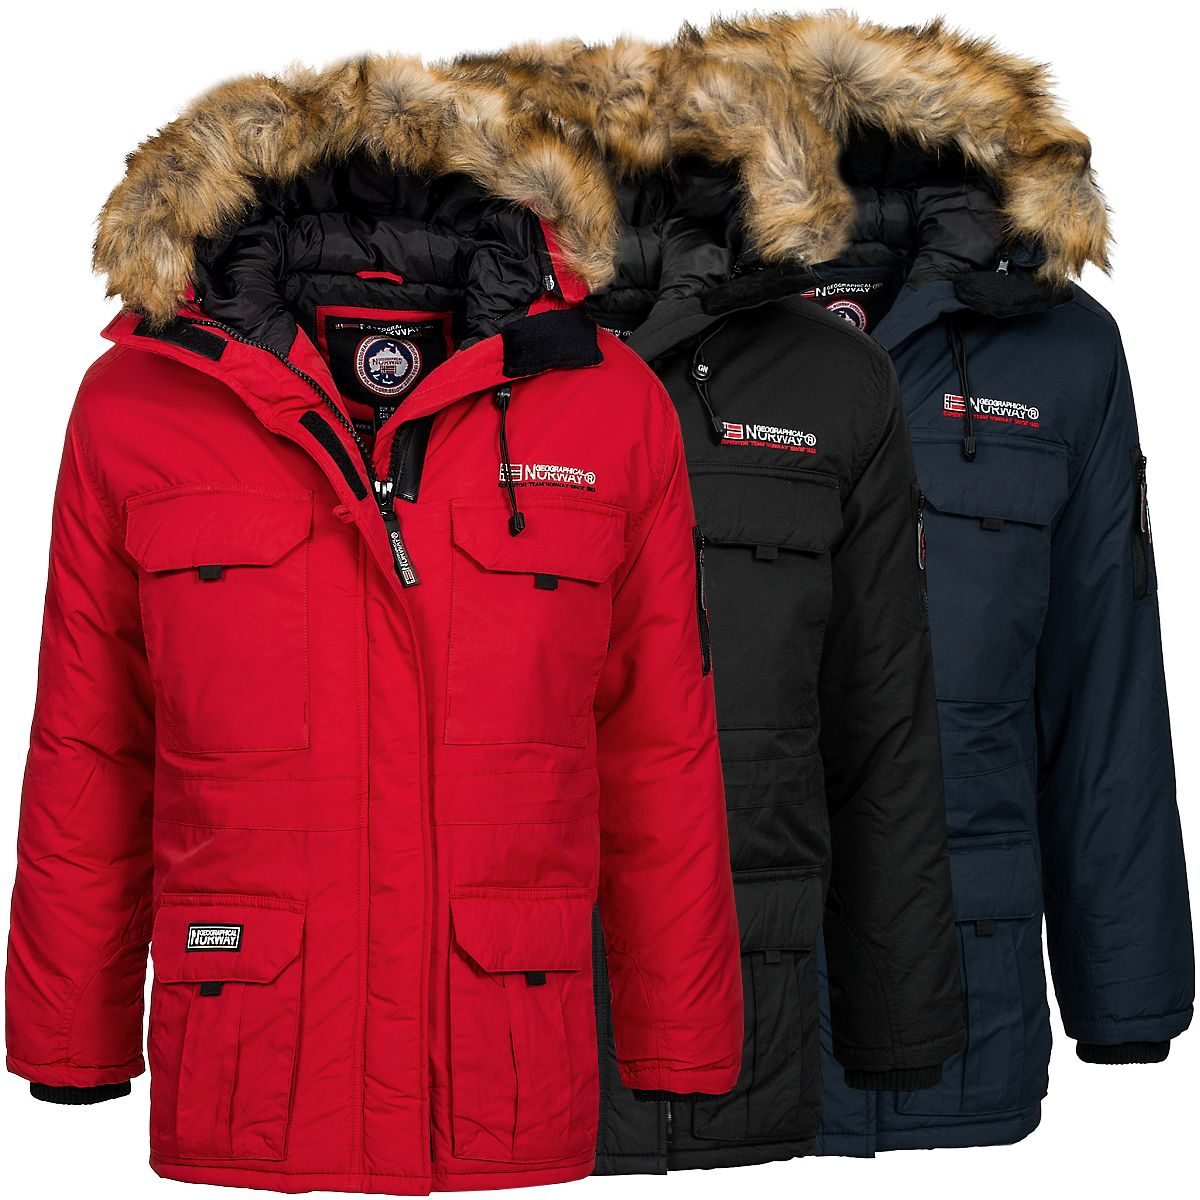 geographical norway herren winterparka baileys jacke. Black Bedroom Furniture Sets. Home Design Ideas